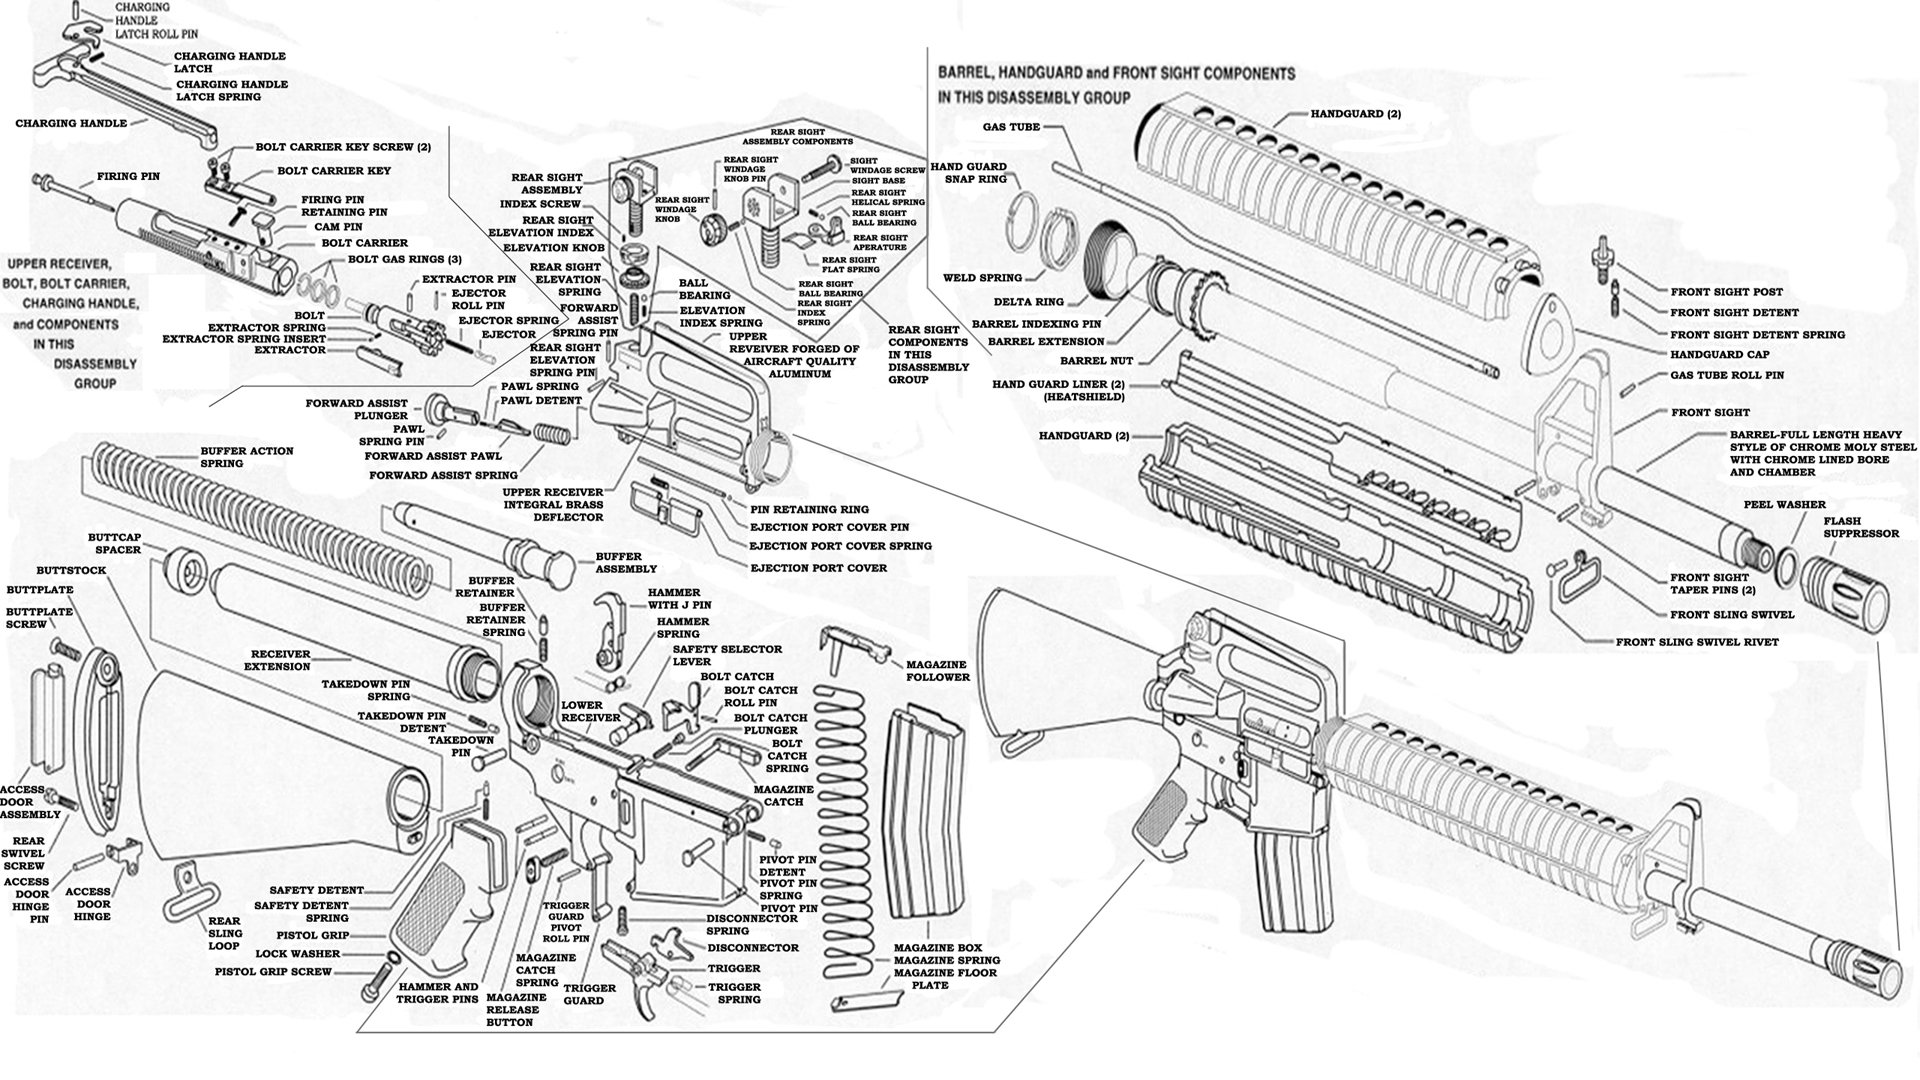 Schematic Hd Wallpaper